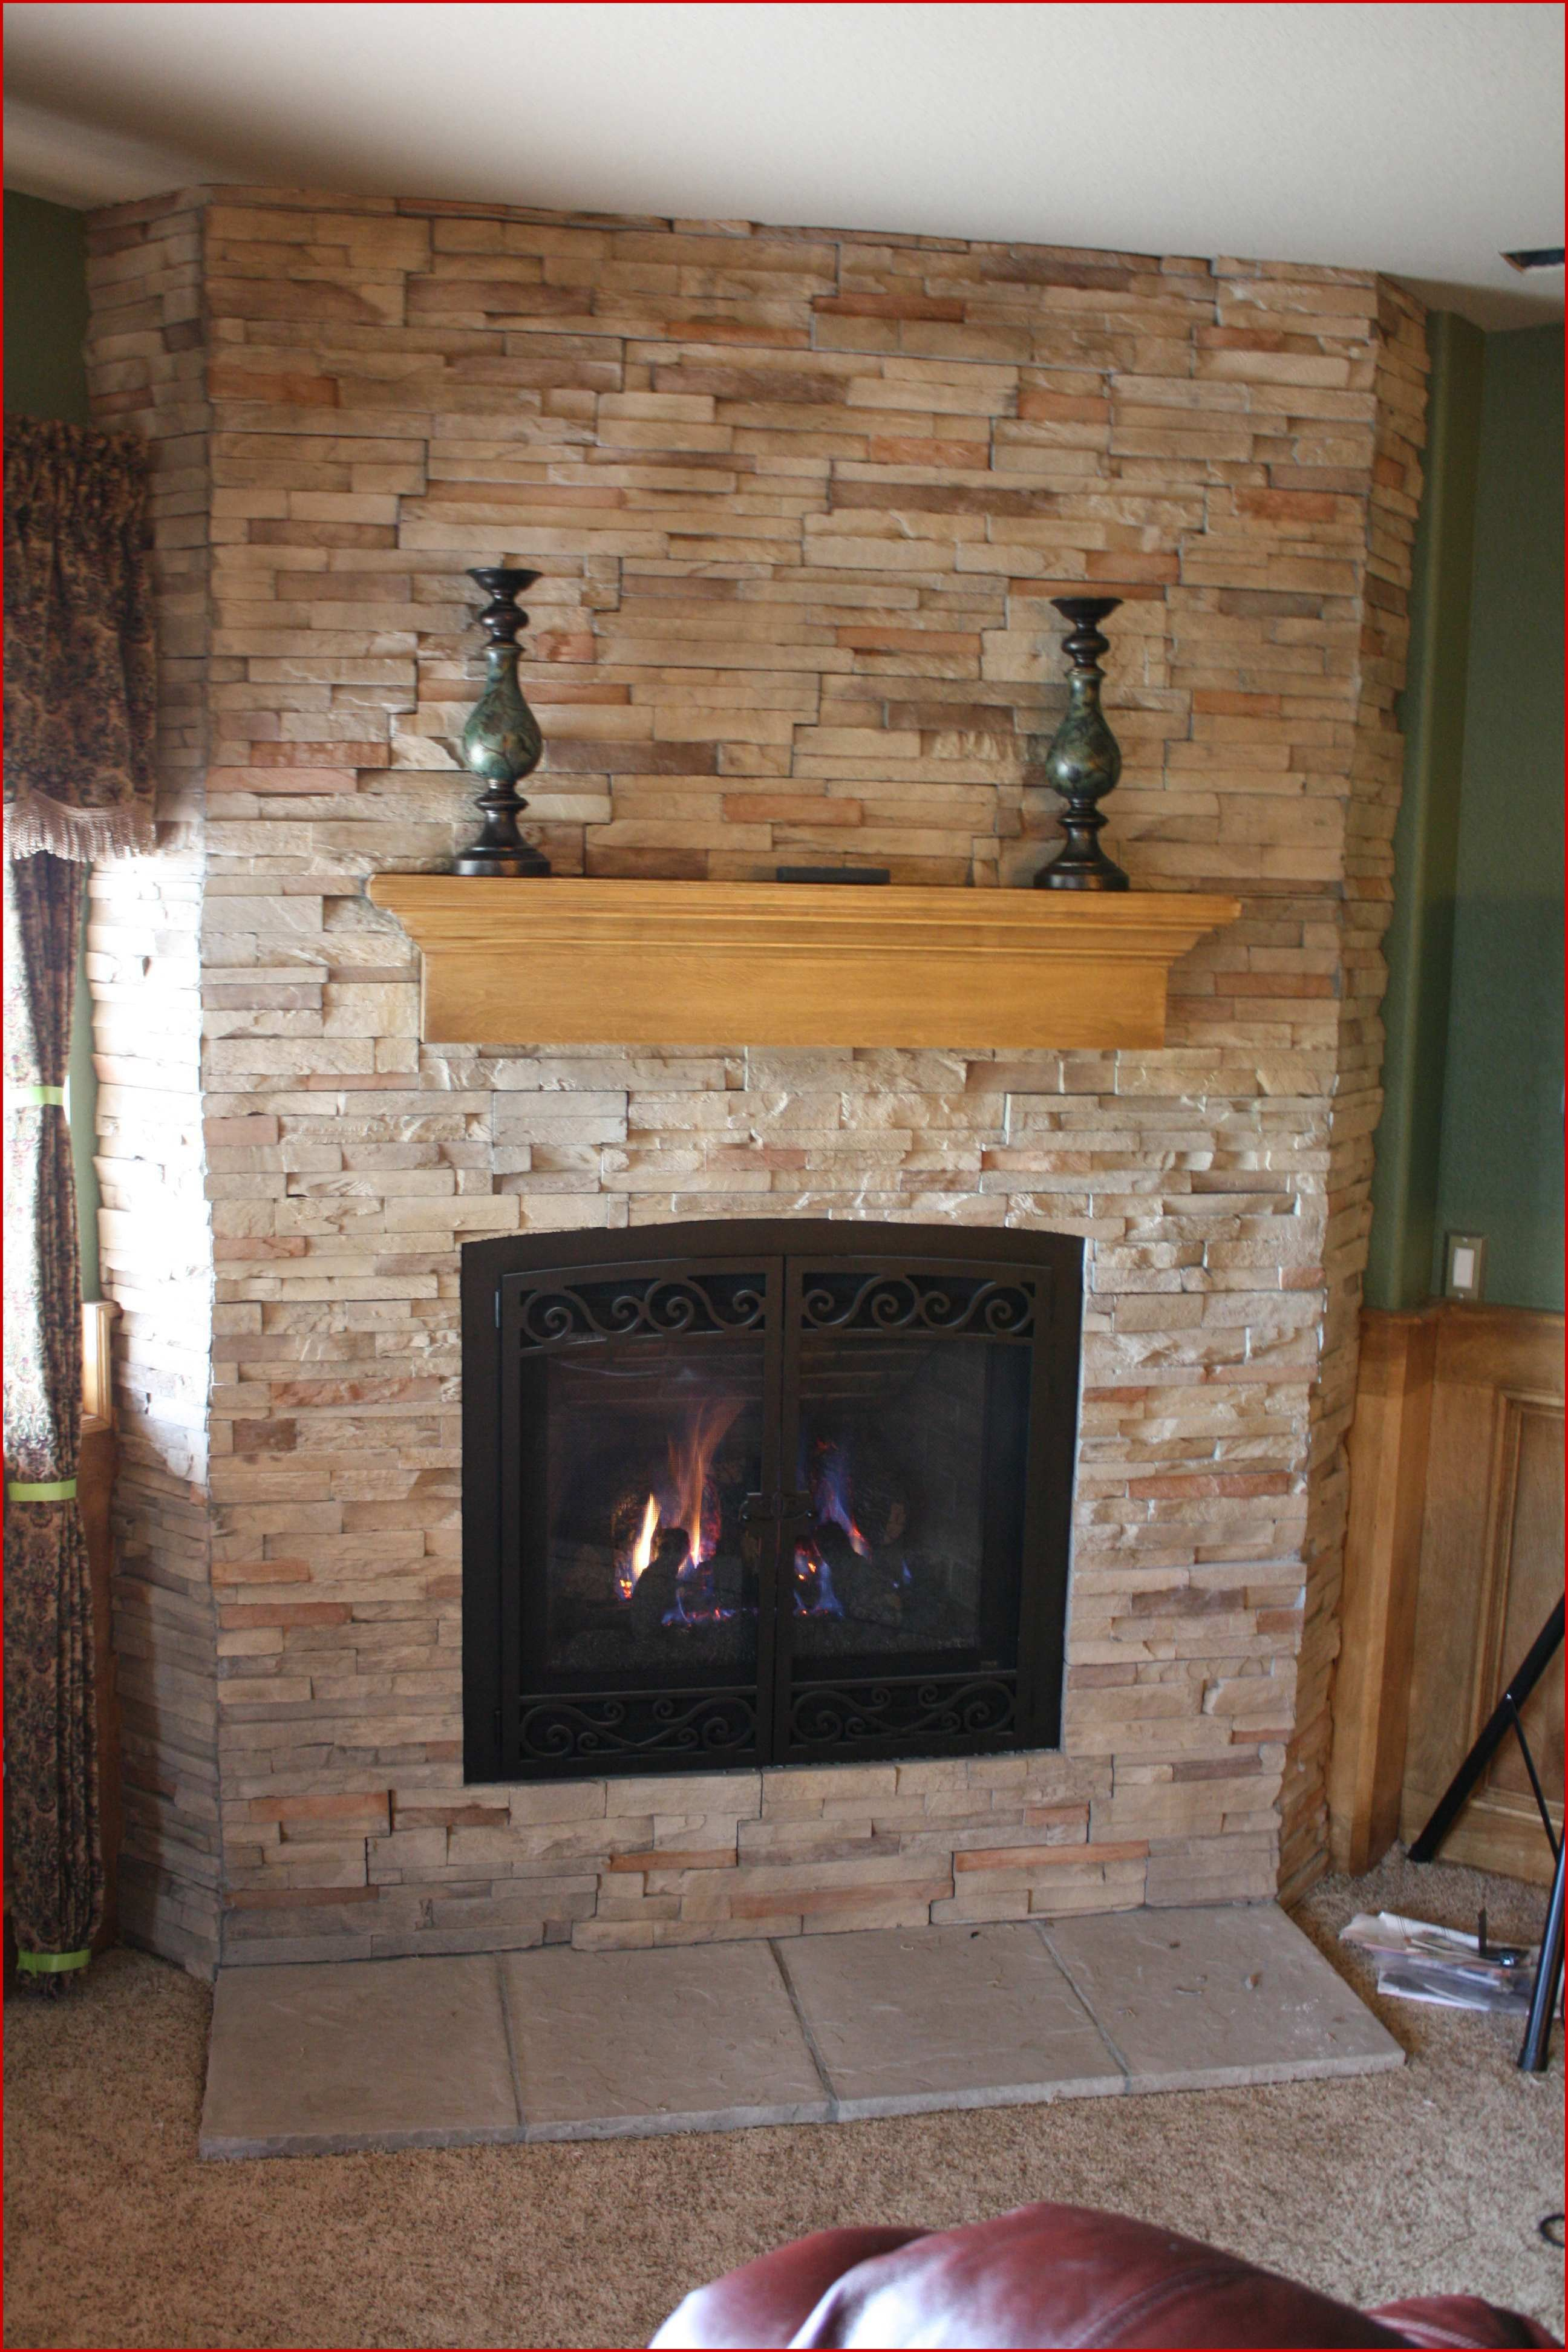 Adding A Fireplace Adding A Fireplace To A House Artificial Fireplace Best Fireplace Insert Best Gas F Reface